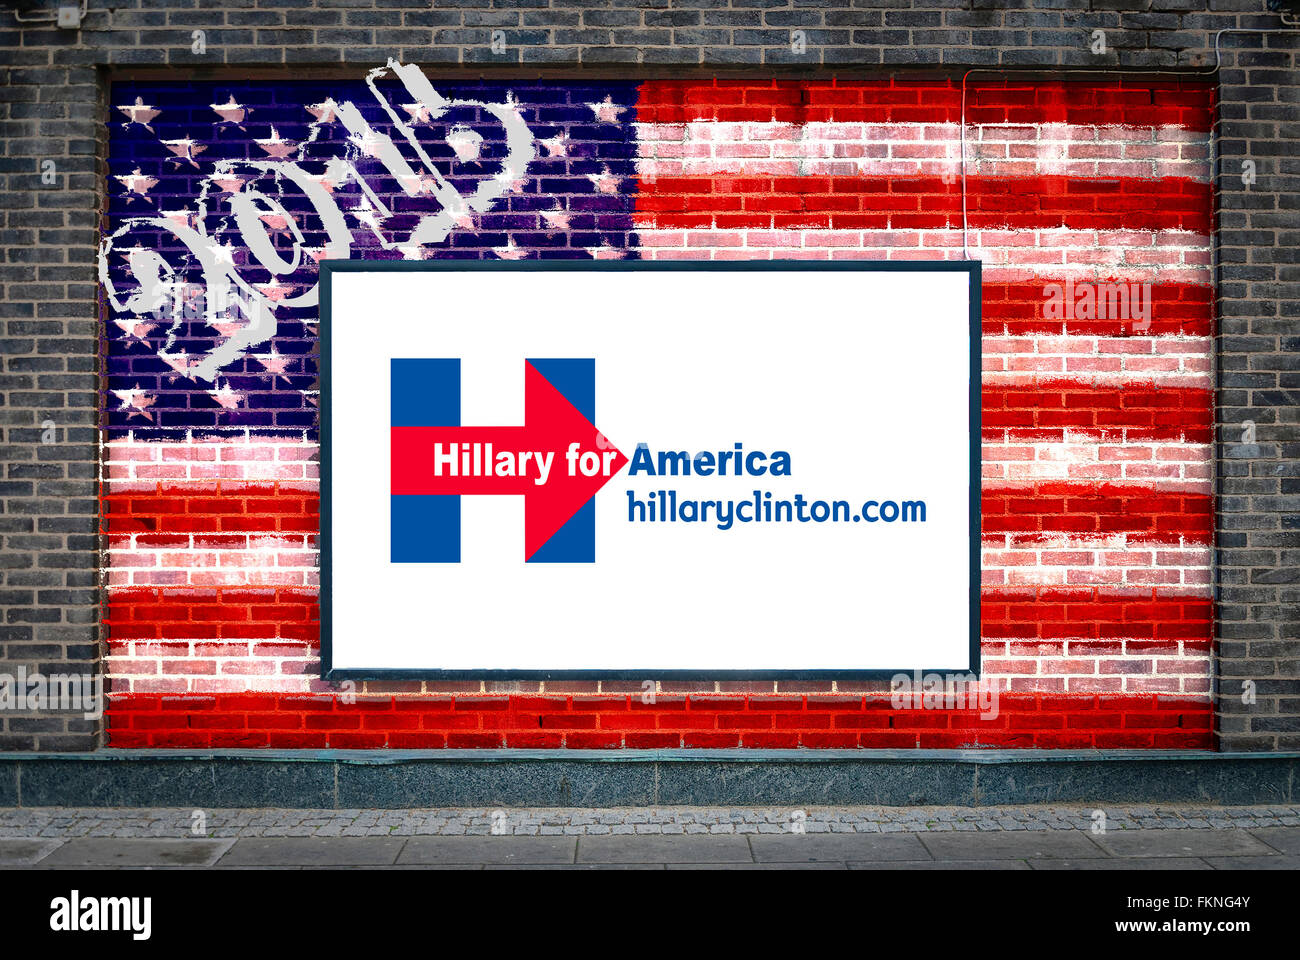 hillary clinton 2016 presidential campaign poster on a billboard